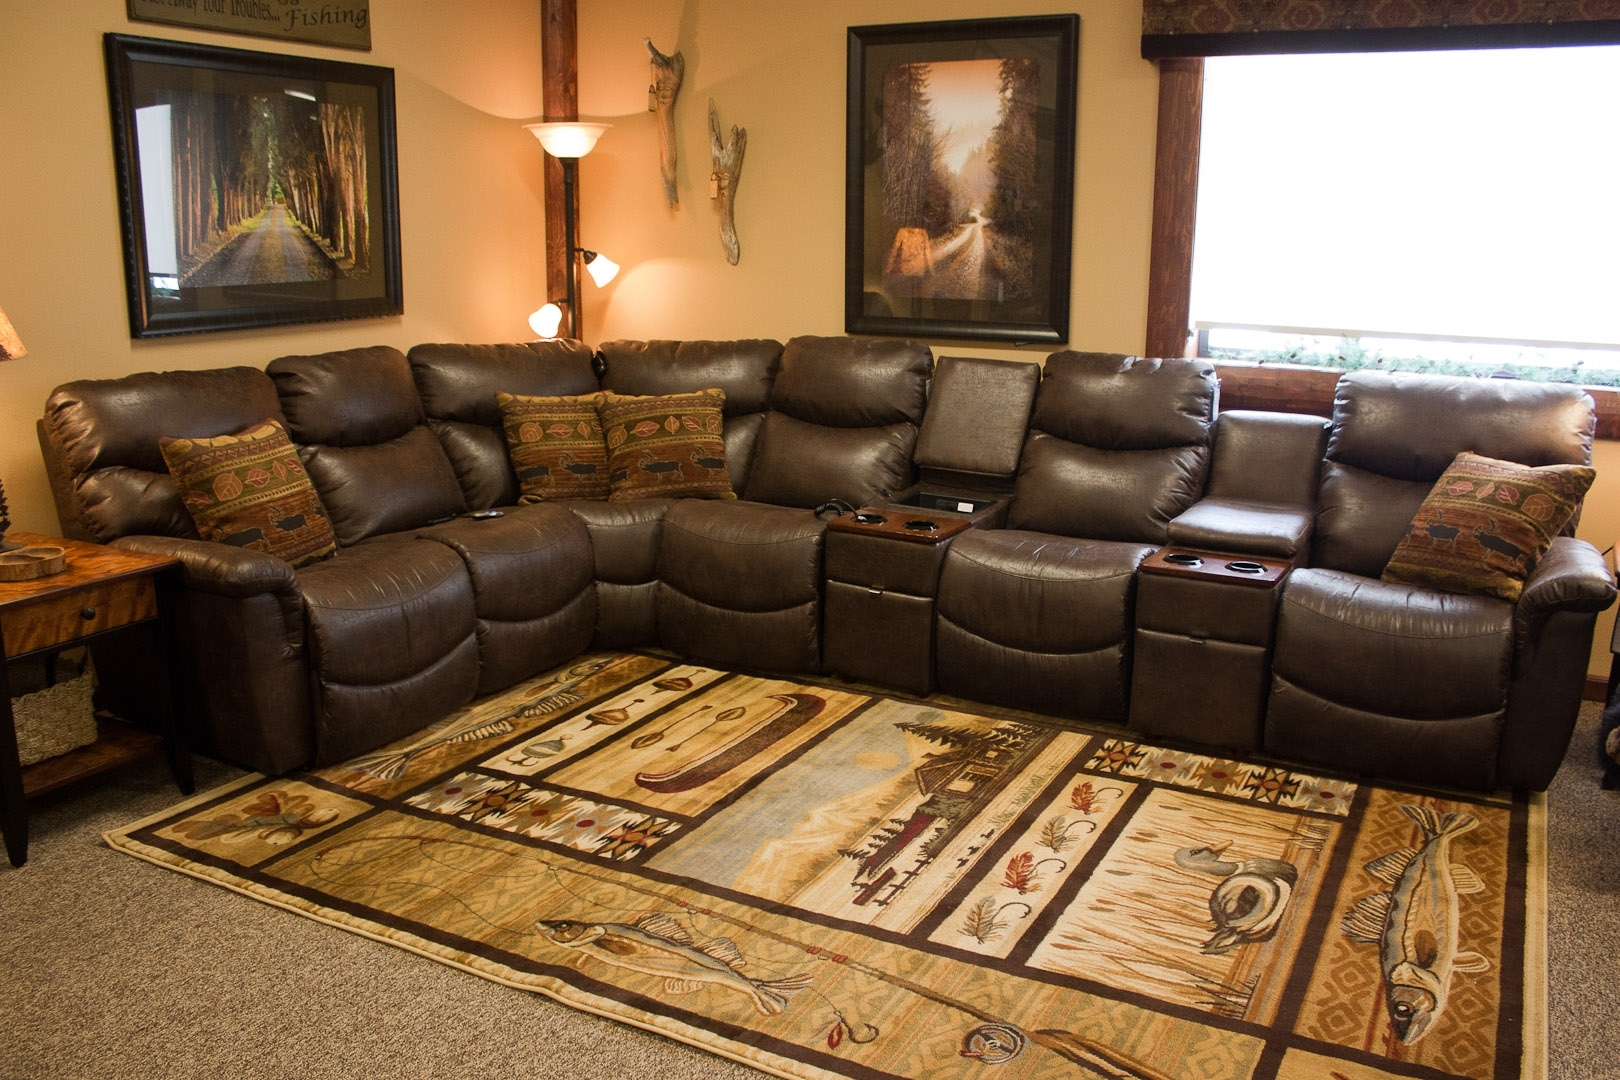 Lazy Boy Sectional Sofas | Lazy Boy Sectional Sofas With Recliners Throughout La Z Boy Sectional Sofas (View 3 of 10)